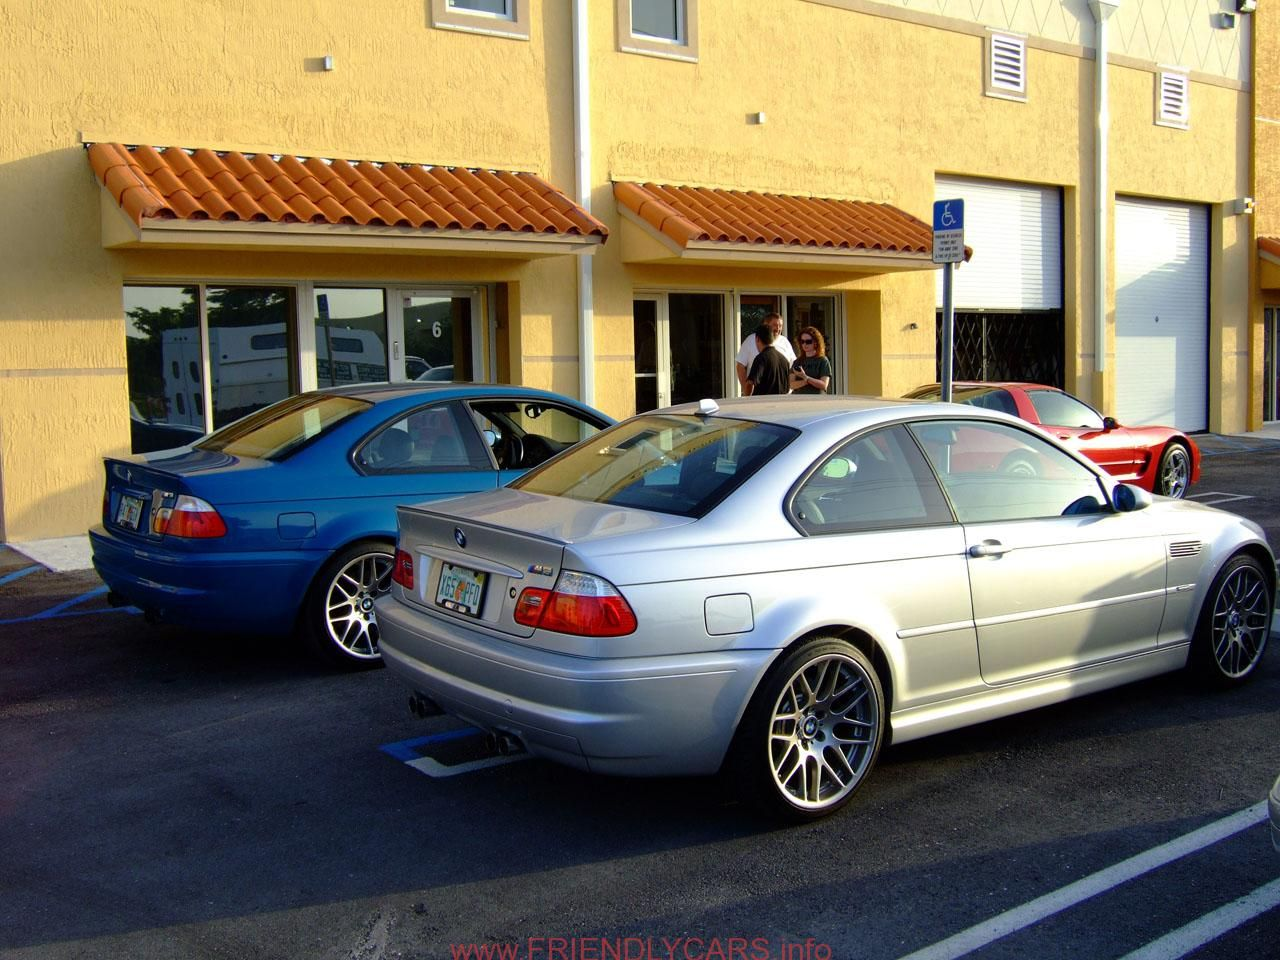 punta vin copart for in fl sale auto title xi ended en carfinder auctions online gorda certificate of on bmw lot auction